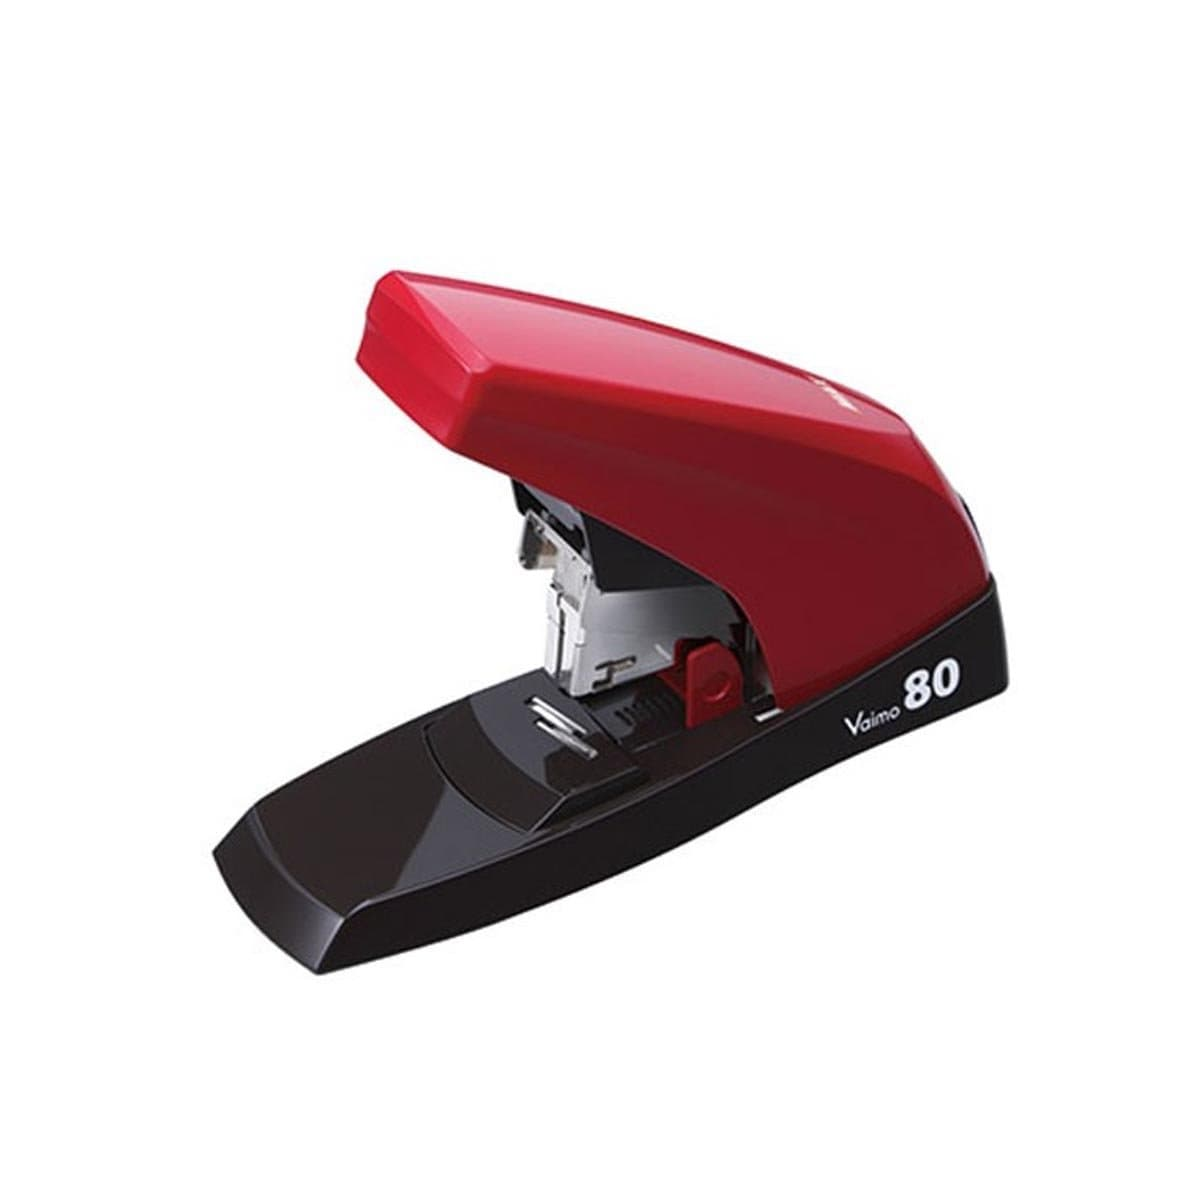 Max Stapler HD-11UFL Red